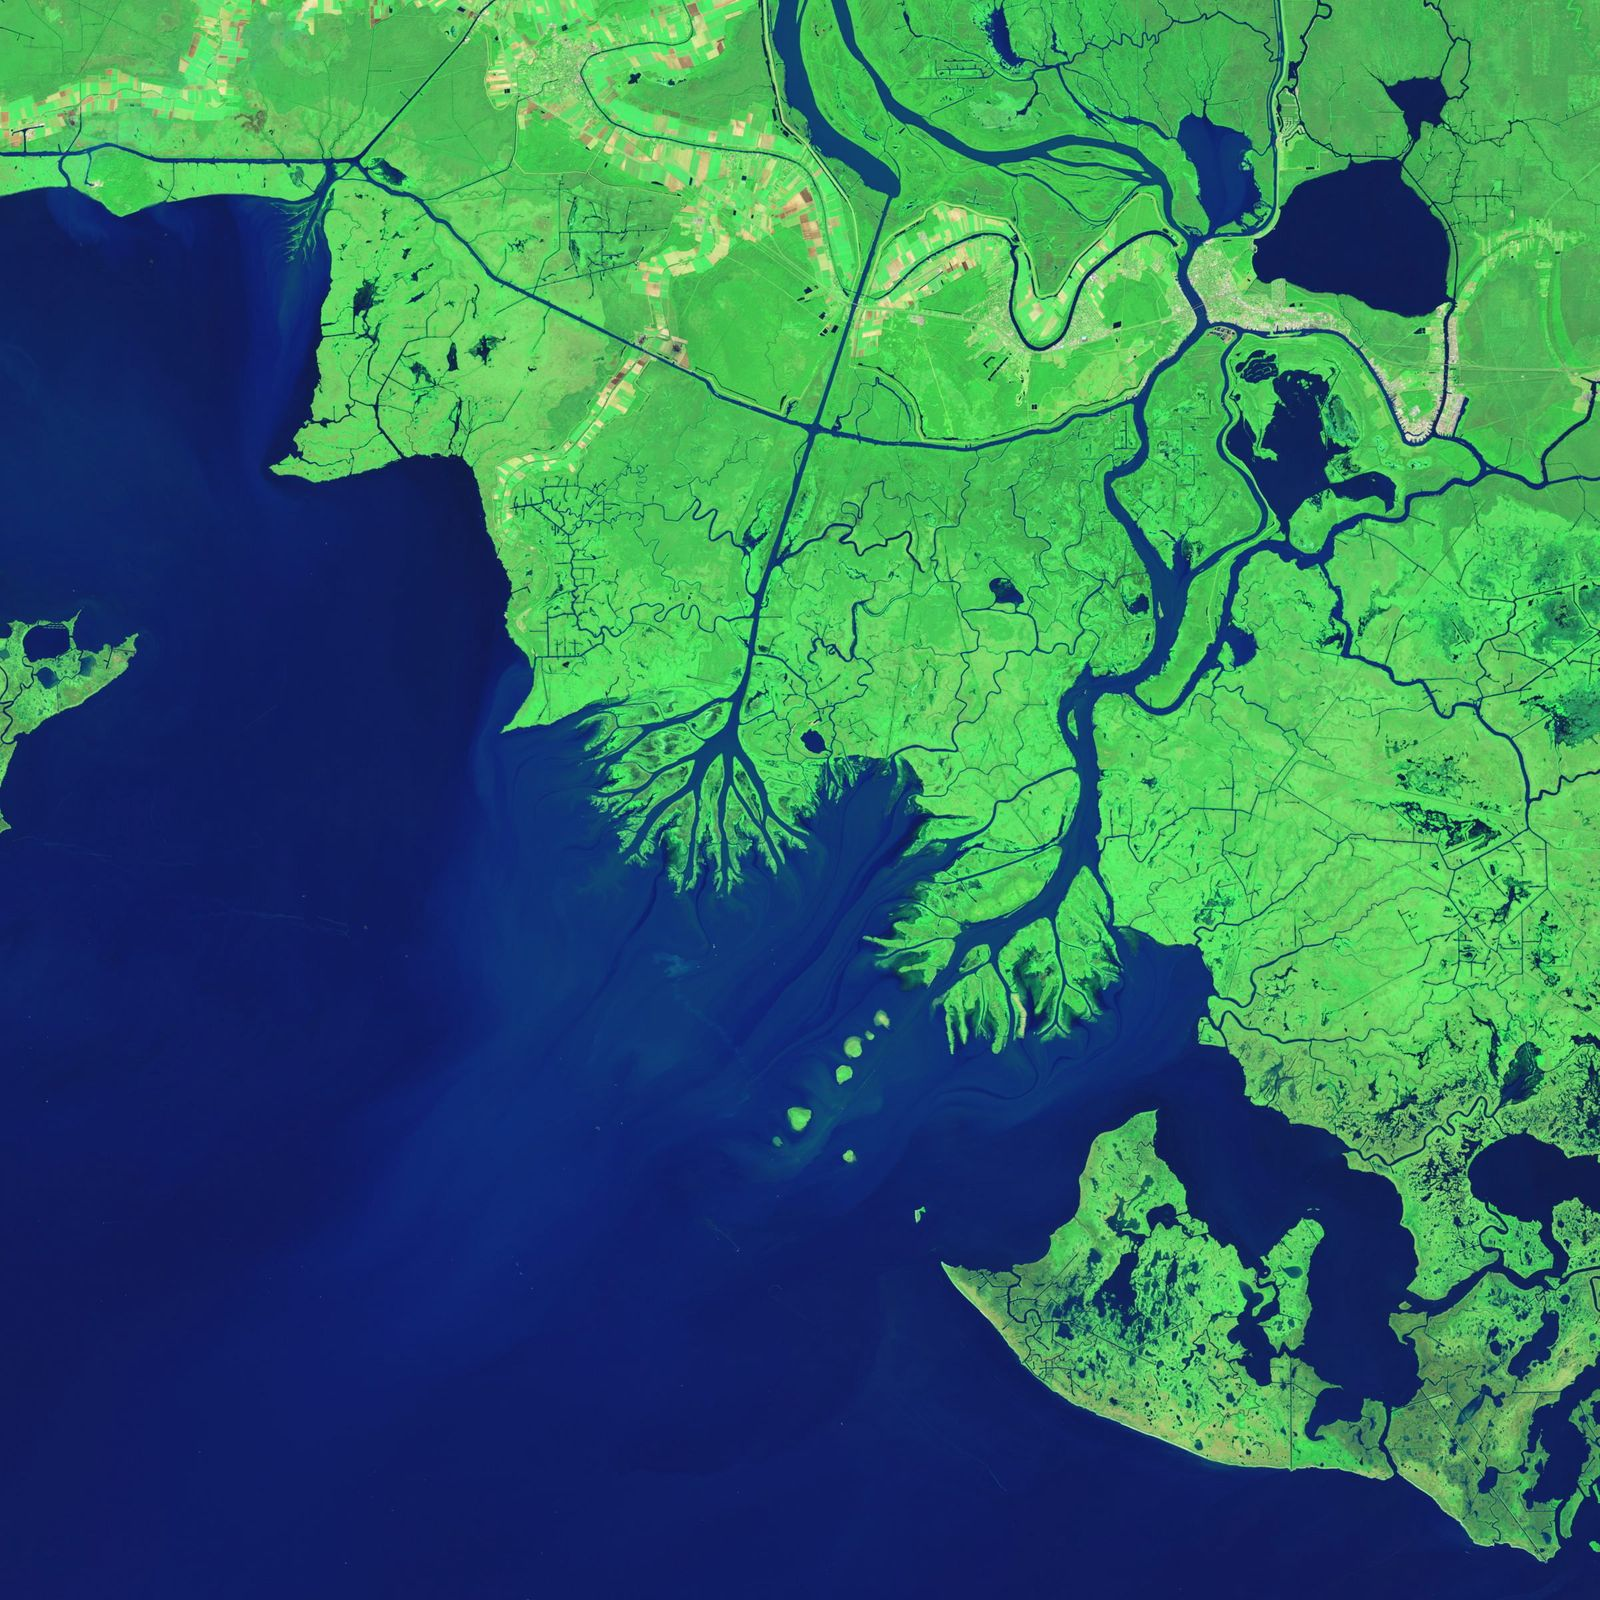 Growing Deltas in Atchafalaya Bay